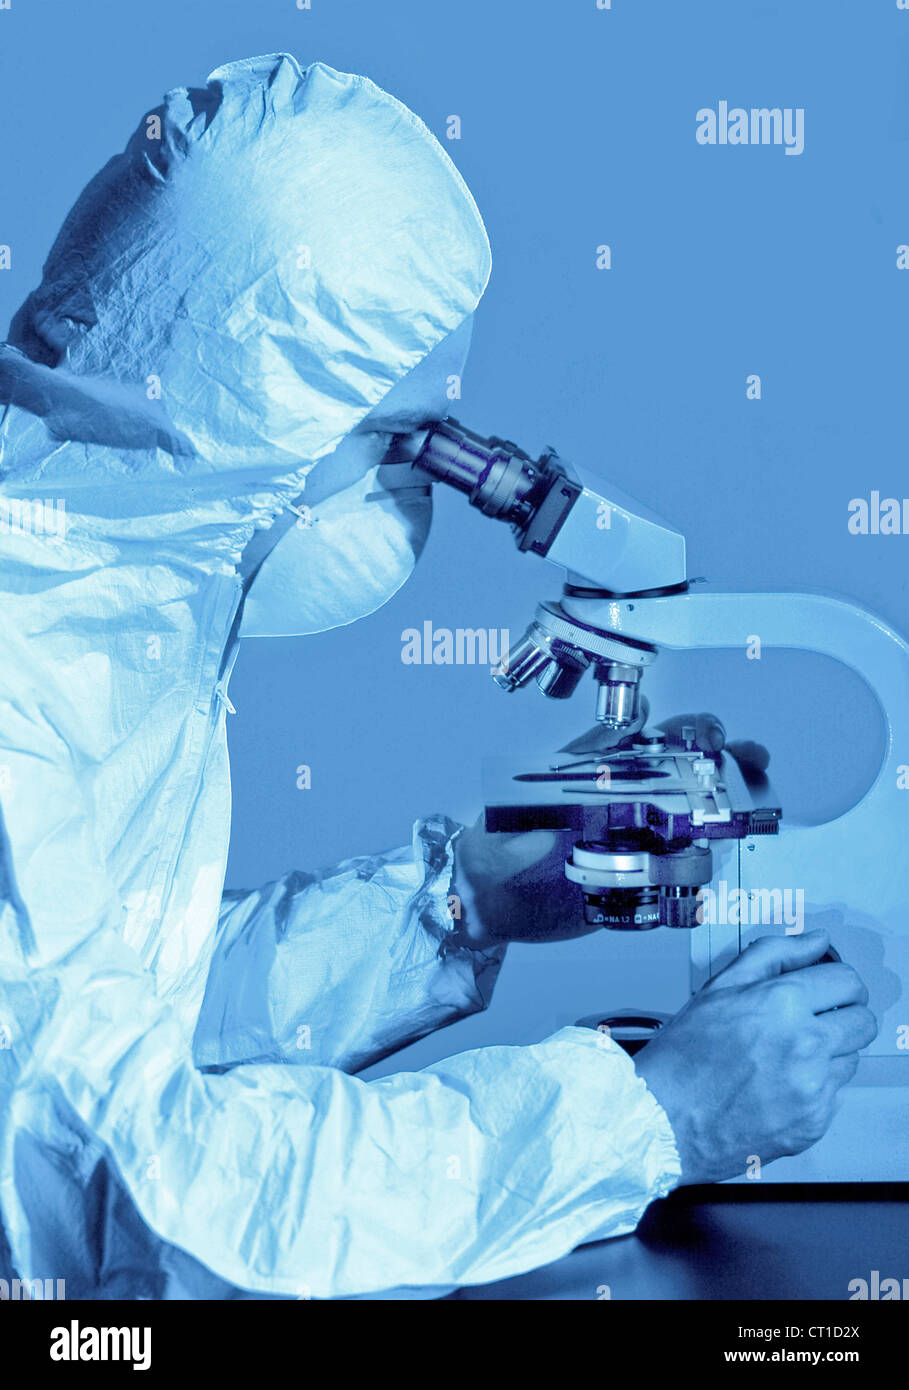 scientist at a microscope - Stock Image